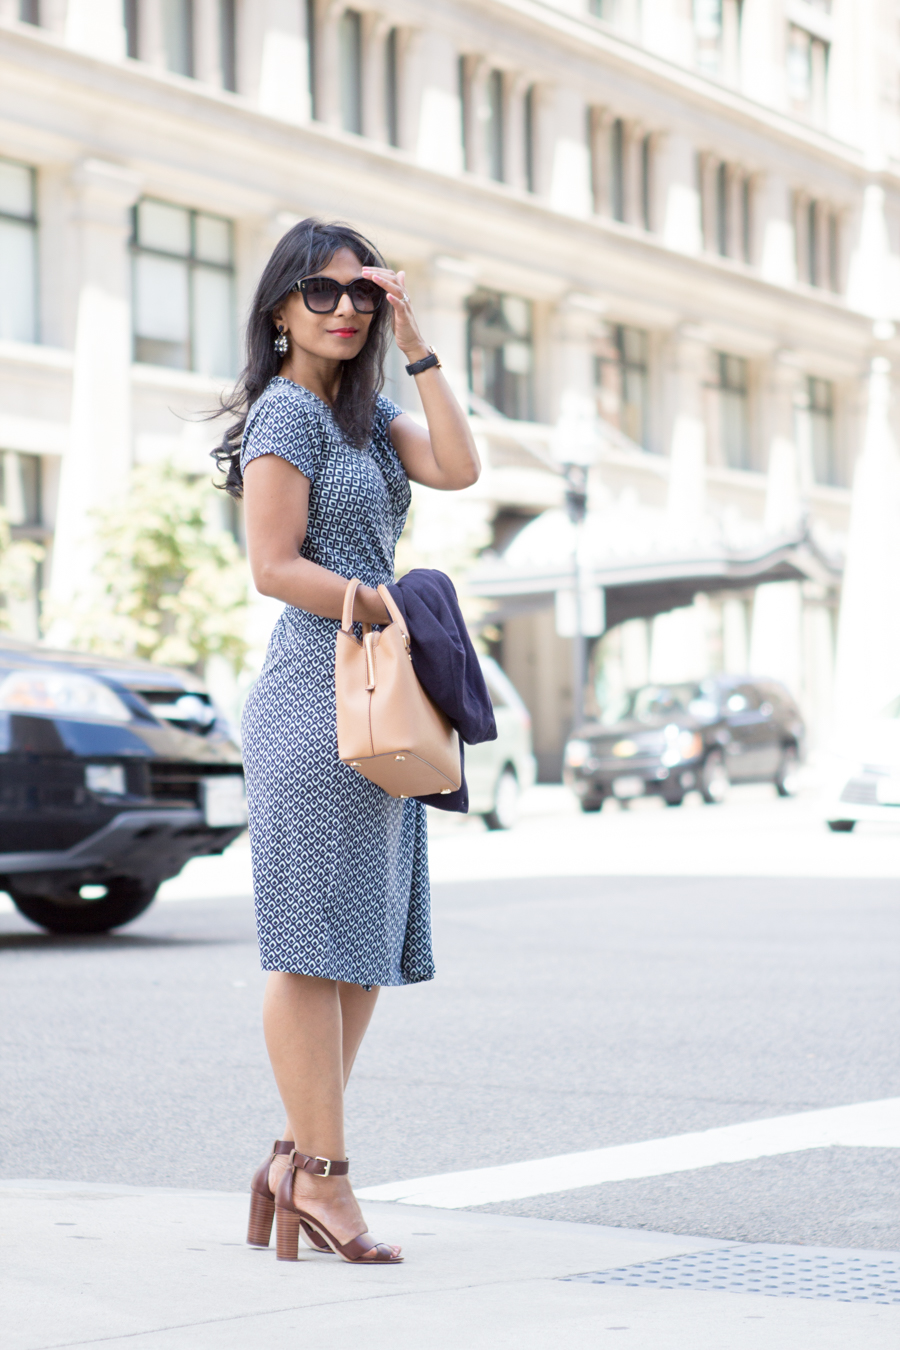 ann taylor, work dress, wrap dress, presentation style, dress for success, petite fashion, corporate chic, office style, 9 to 5 style, cardigan, navy, block heels, girl boss, power dressing, women's style, fashion blog, boston street style